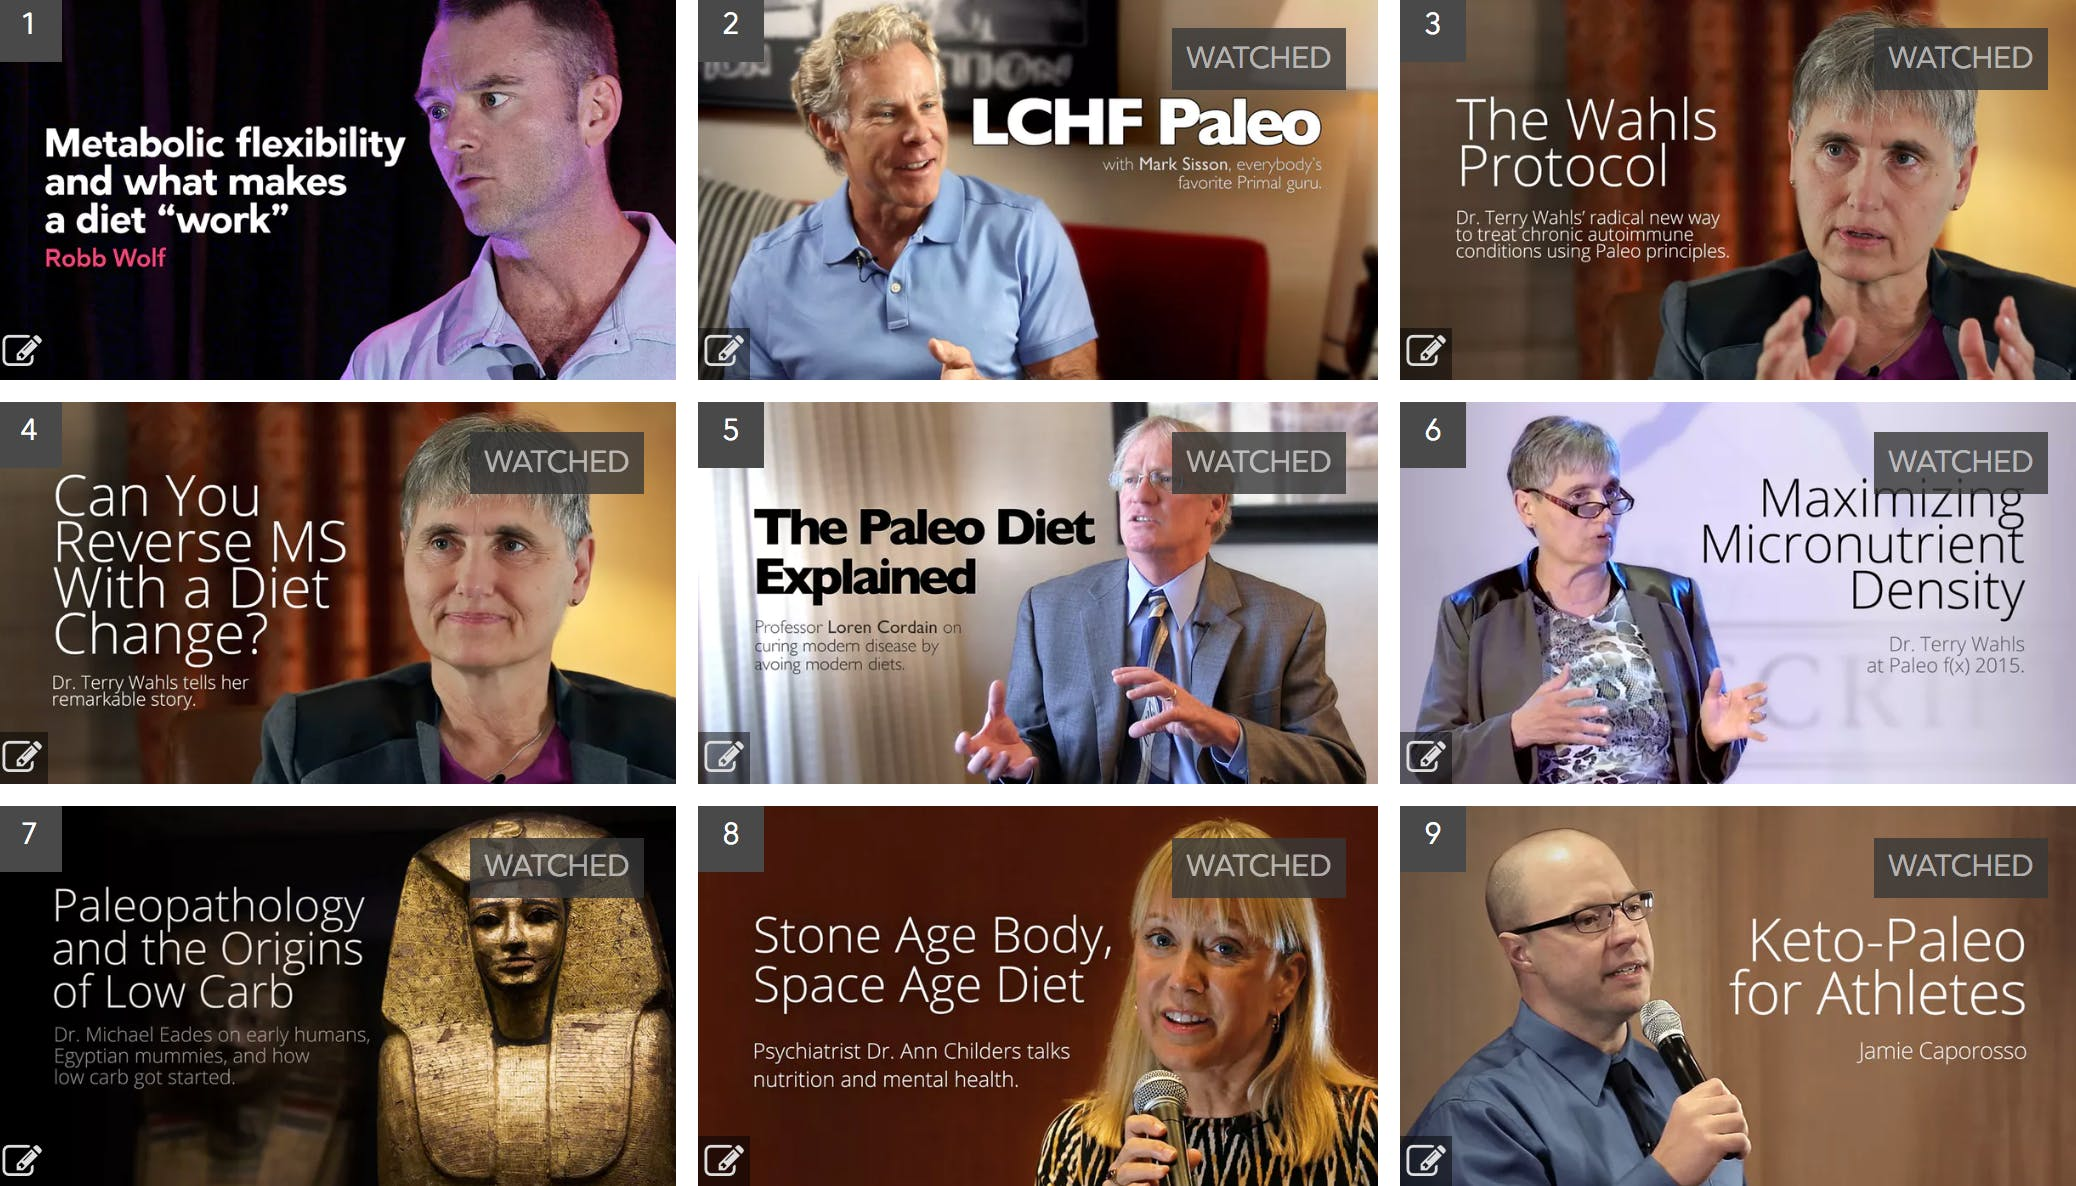 Top videos about paleo diets